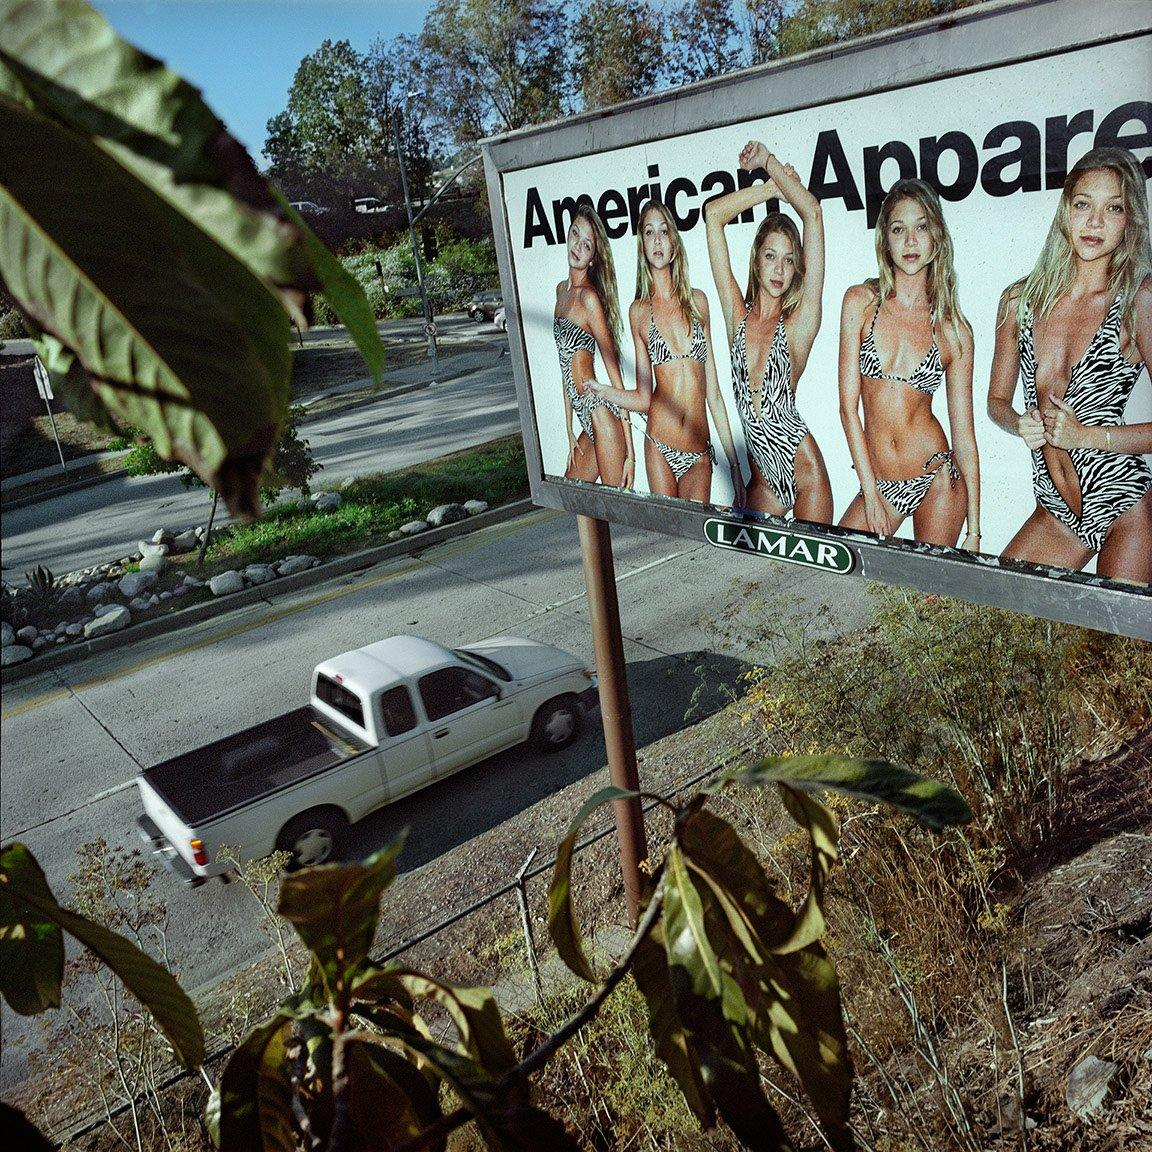 26-TheAmericanApparel-ThomasAlleman-Website-121013